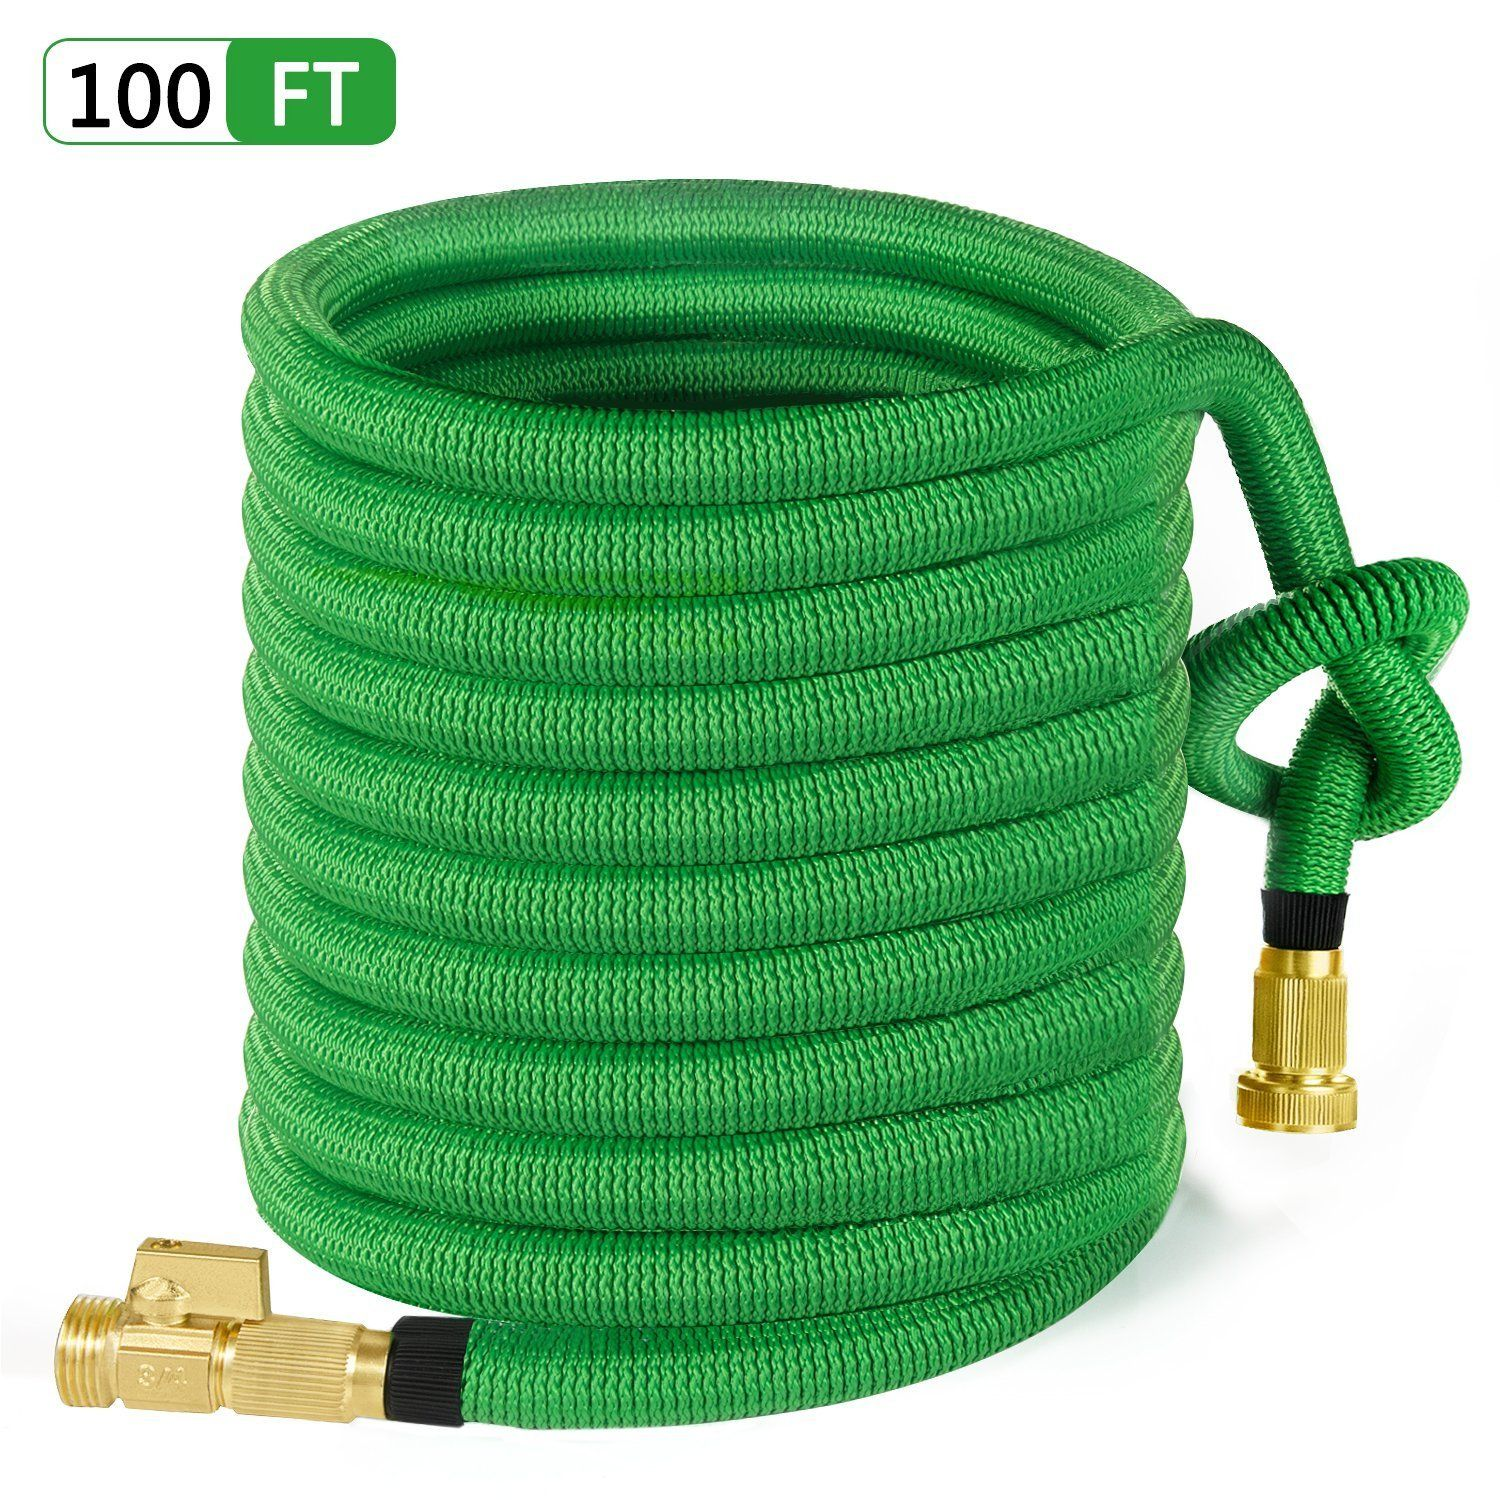 Moonla 100ft Garden Hose All New Expandable Water Hose With 3 4 Solid Brass Fittings Extra Strength Fabric Flexible Expa Garden Hose Bag Storage Water Hose